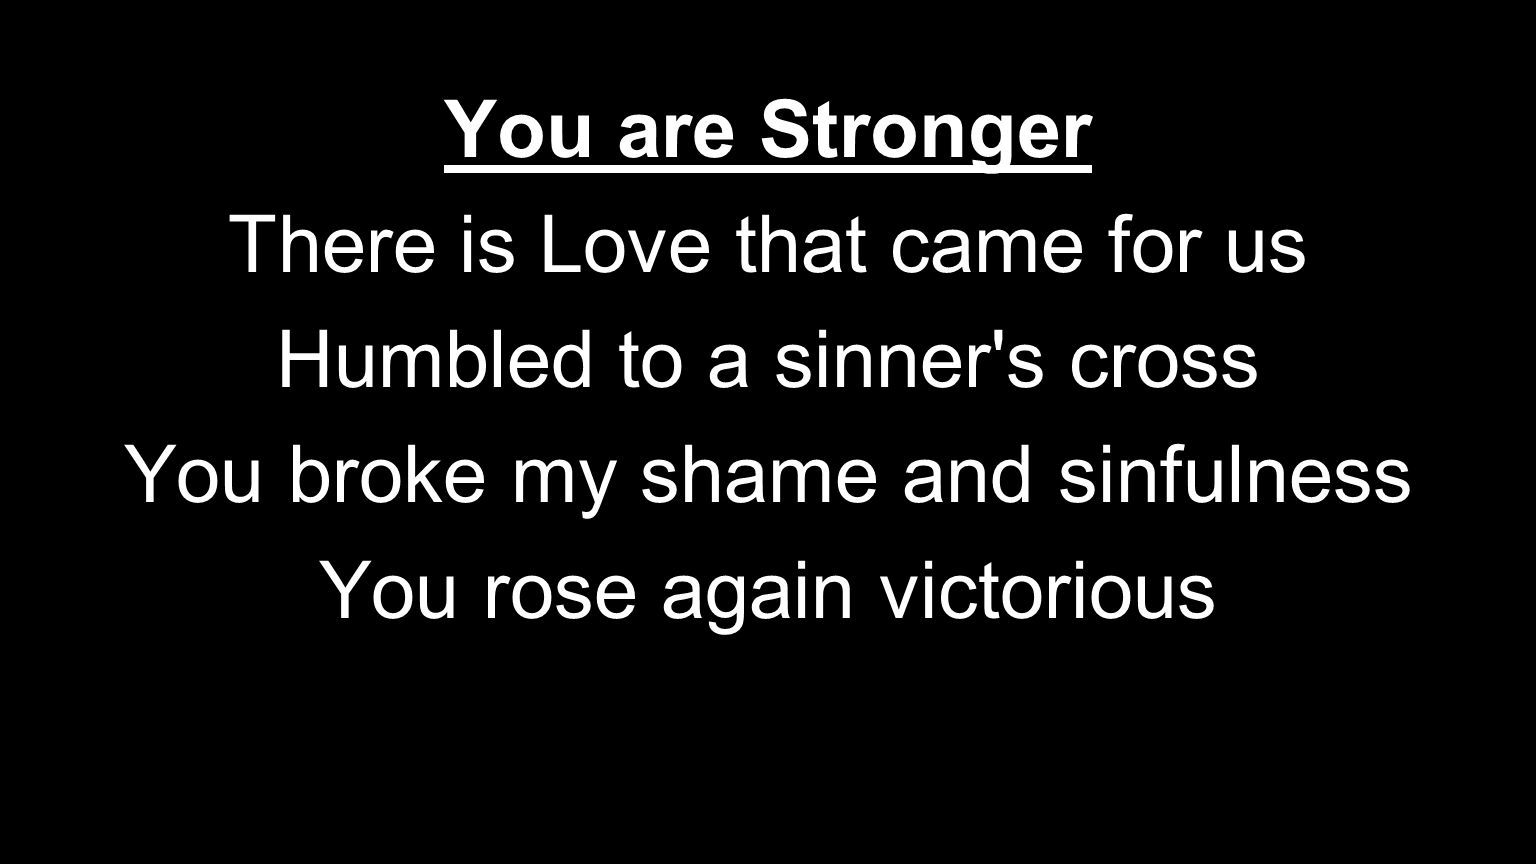 There is Love that came for us Humbled to a sinner s cross